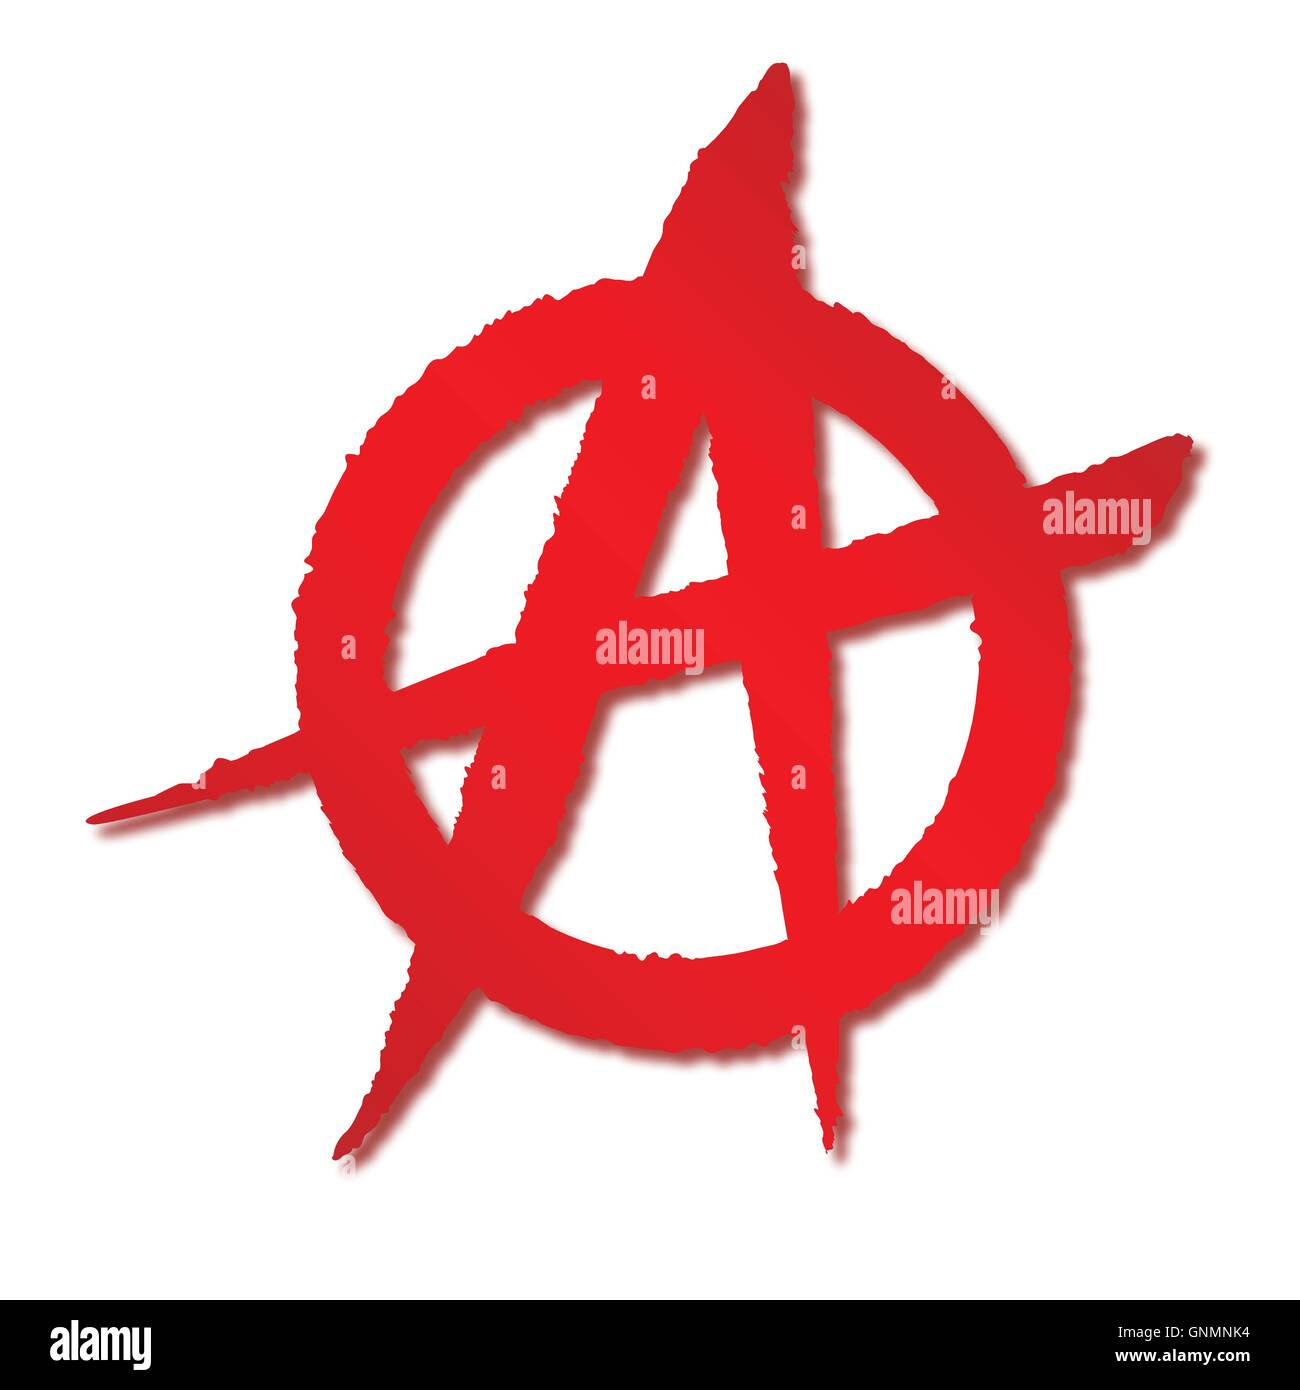 Red anarchy symbol stock vector art illustration vector image red anarchy symbol buycottarizona